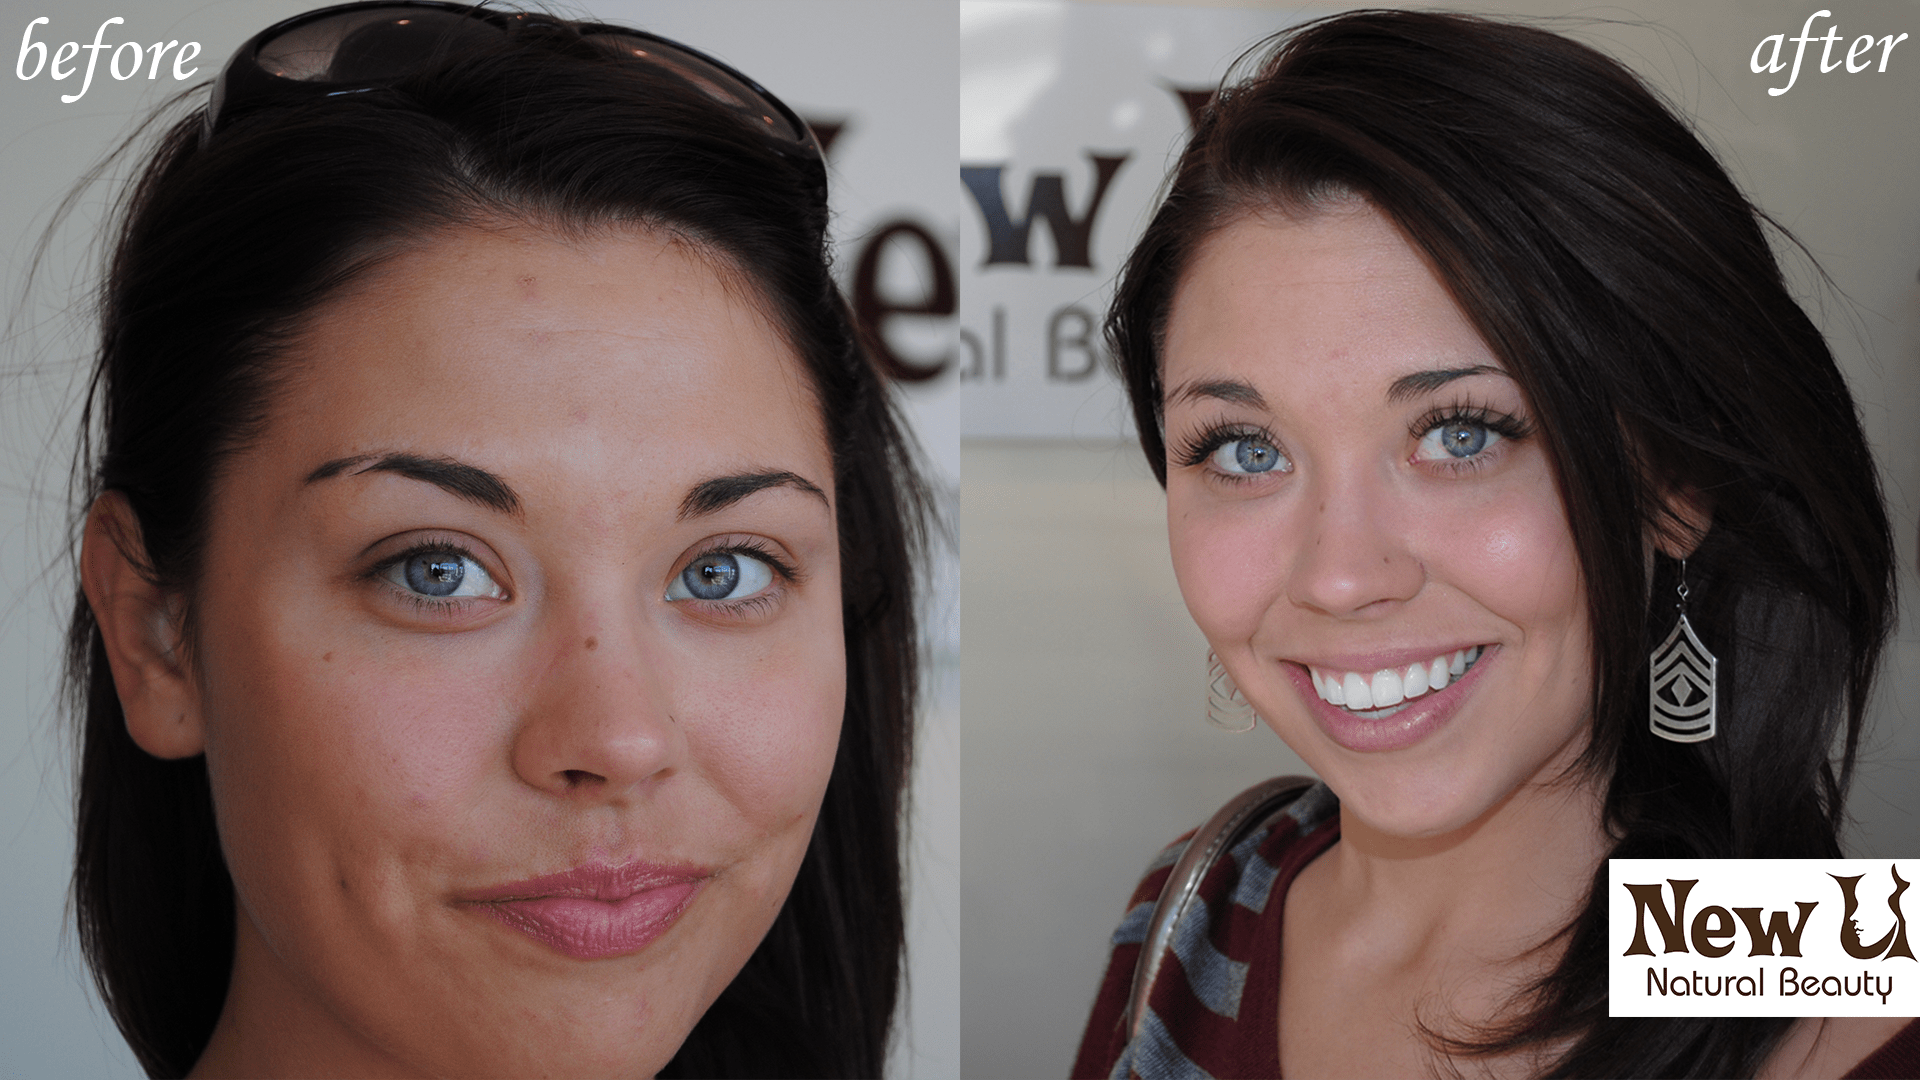 Eyelash Extensions 1 Las Vegas Before and After